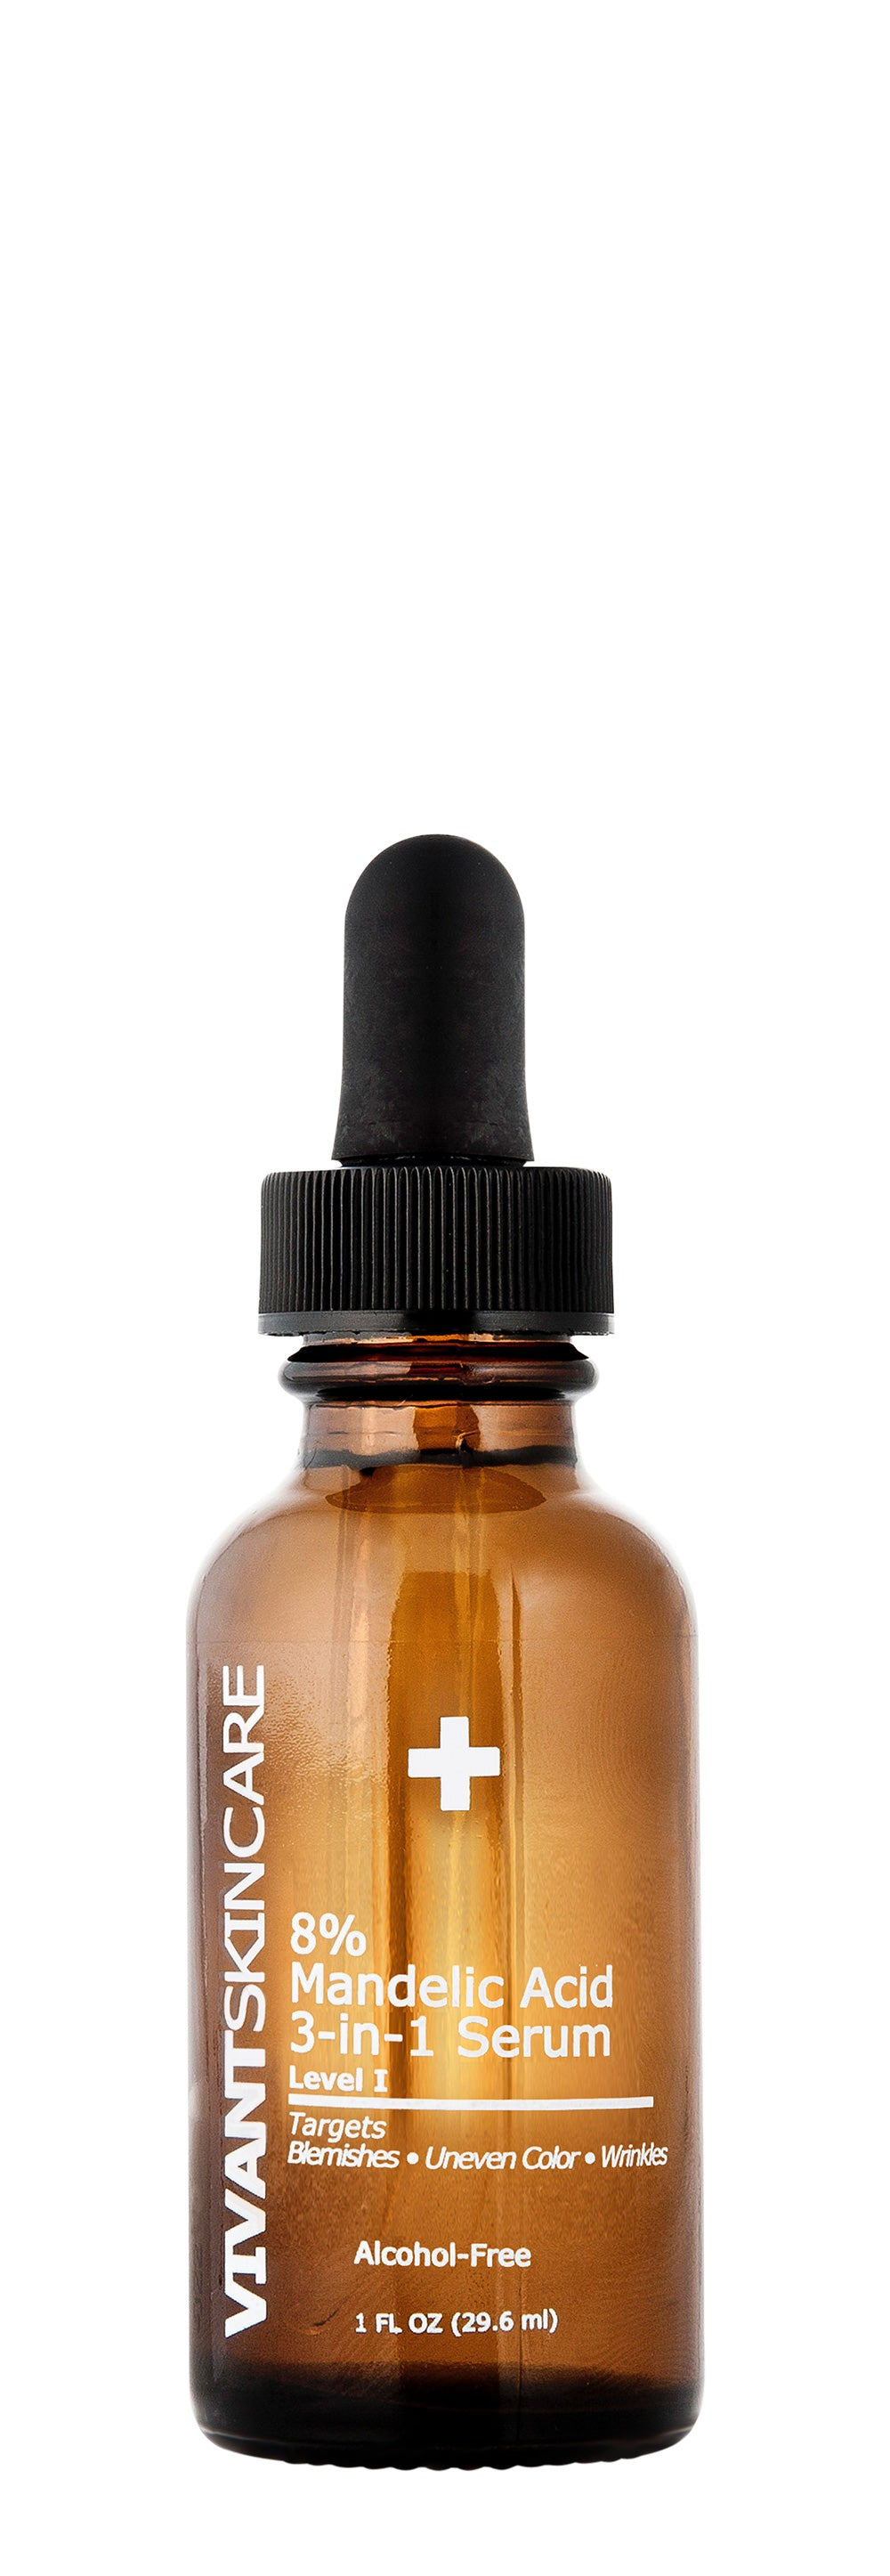 8% Mandelic Acid 3-in-1 Serum